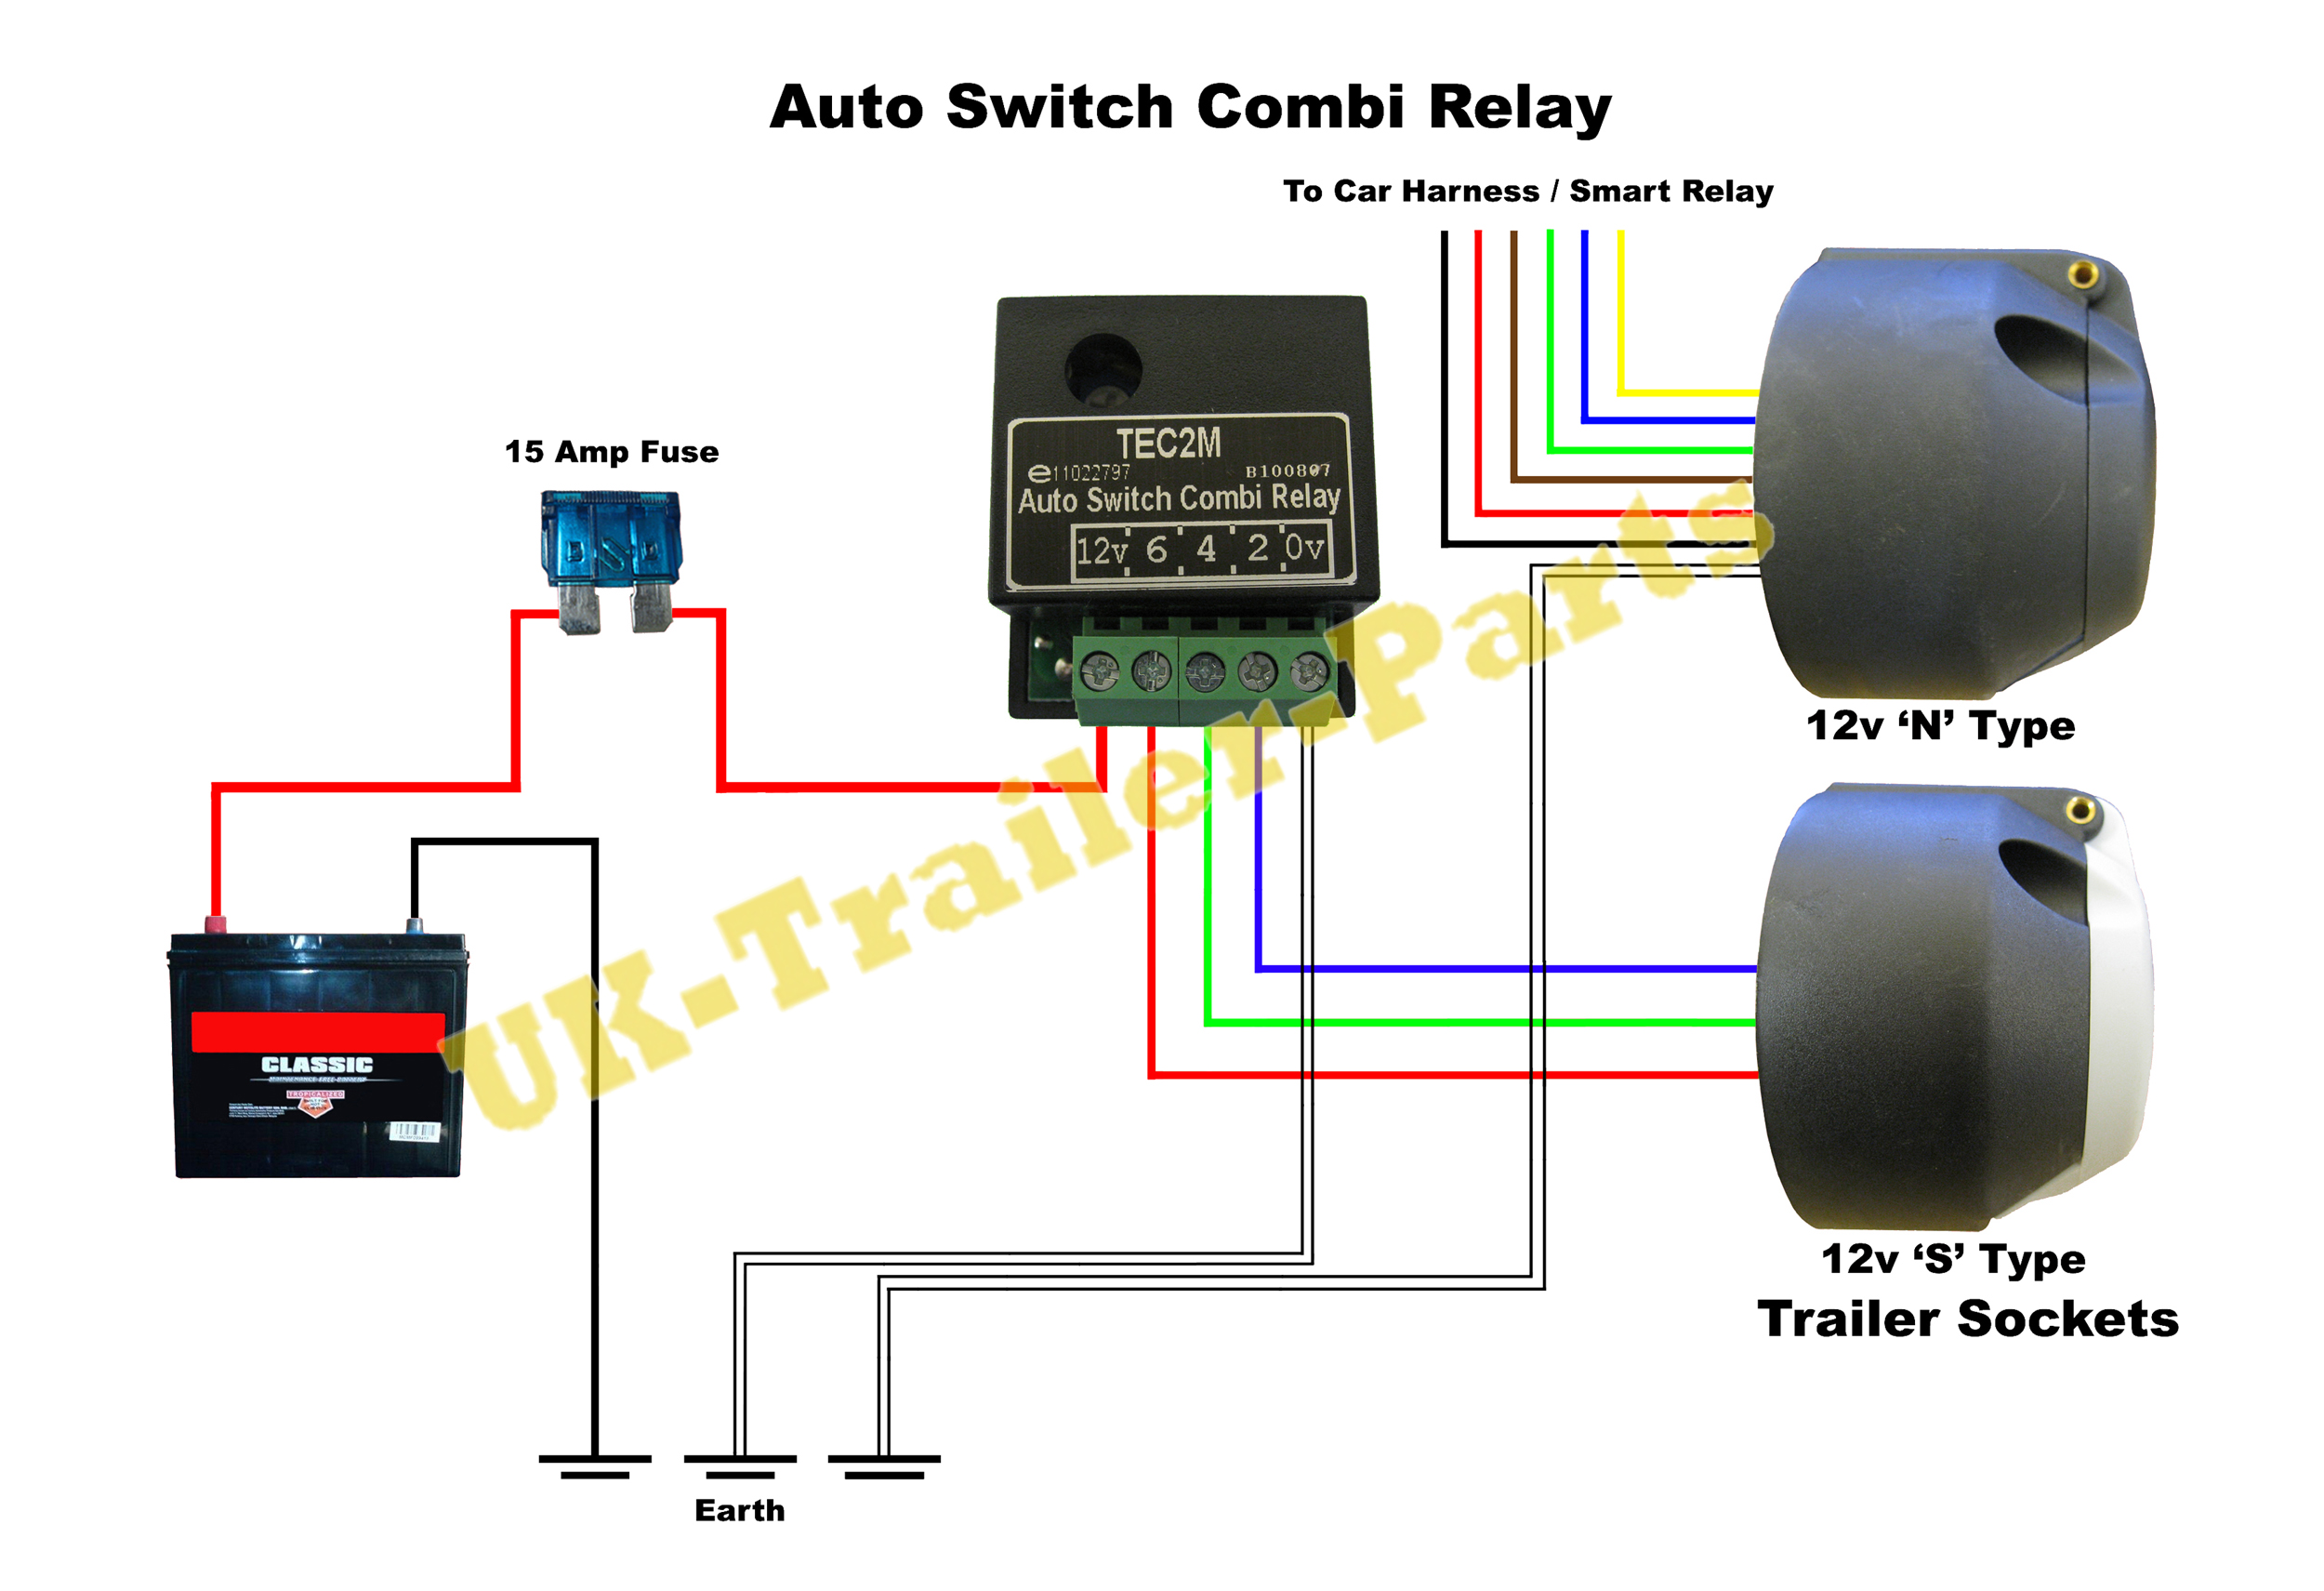 Tec2m Auto Switch Combi Relay Wiring Diagram